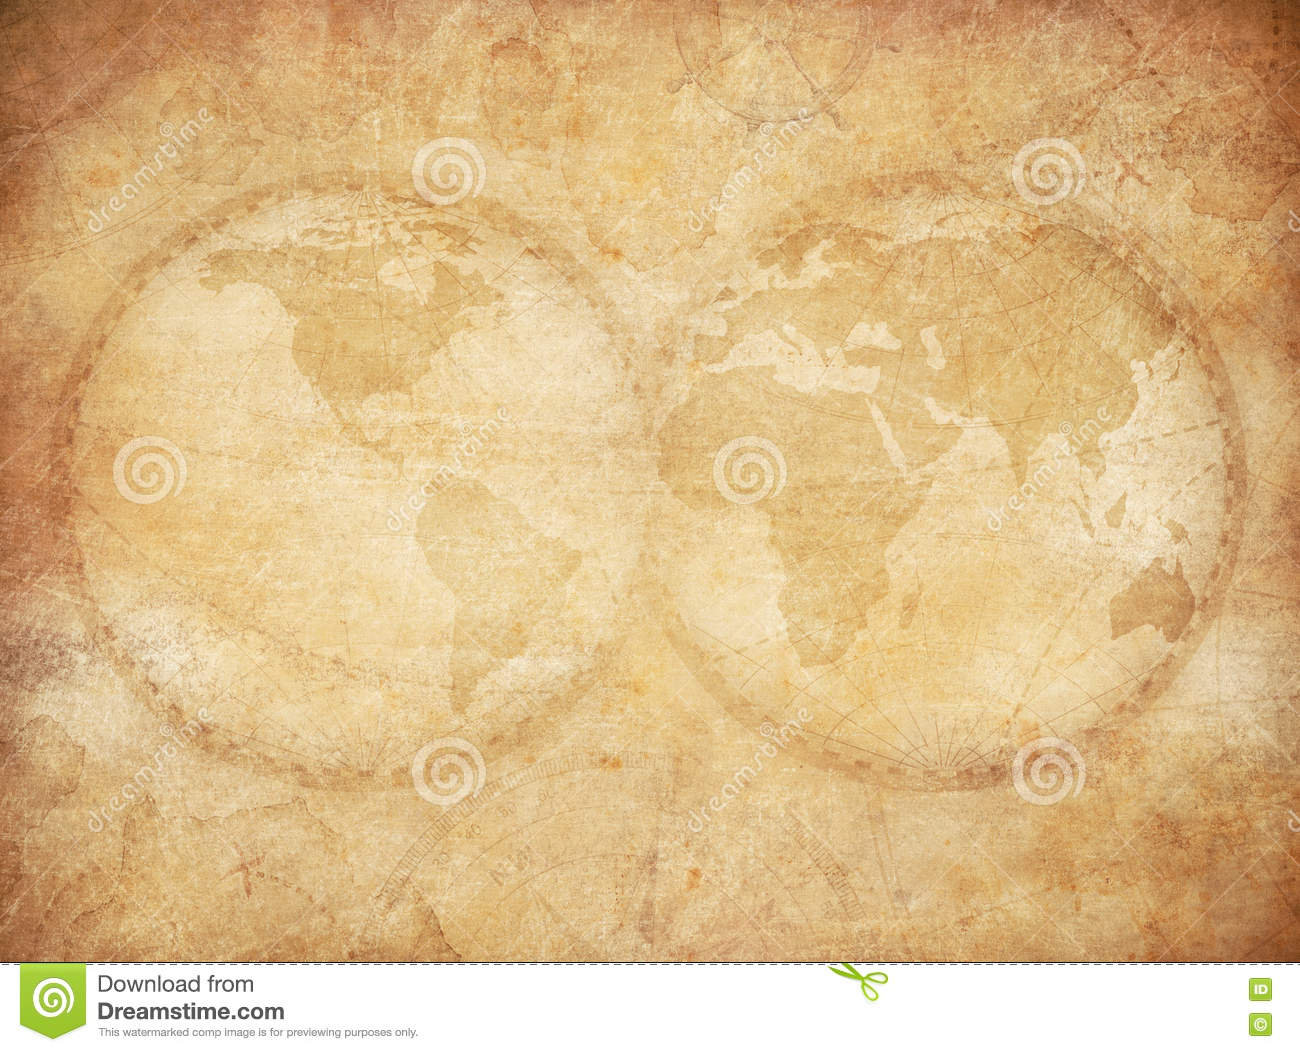 Old vintage world map background stock illustration illustration old vintage world map background royalty free illustration gumiabroncs